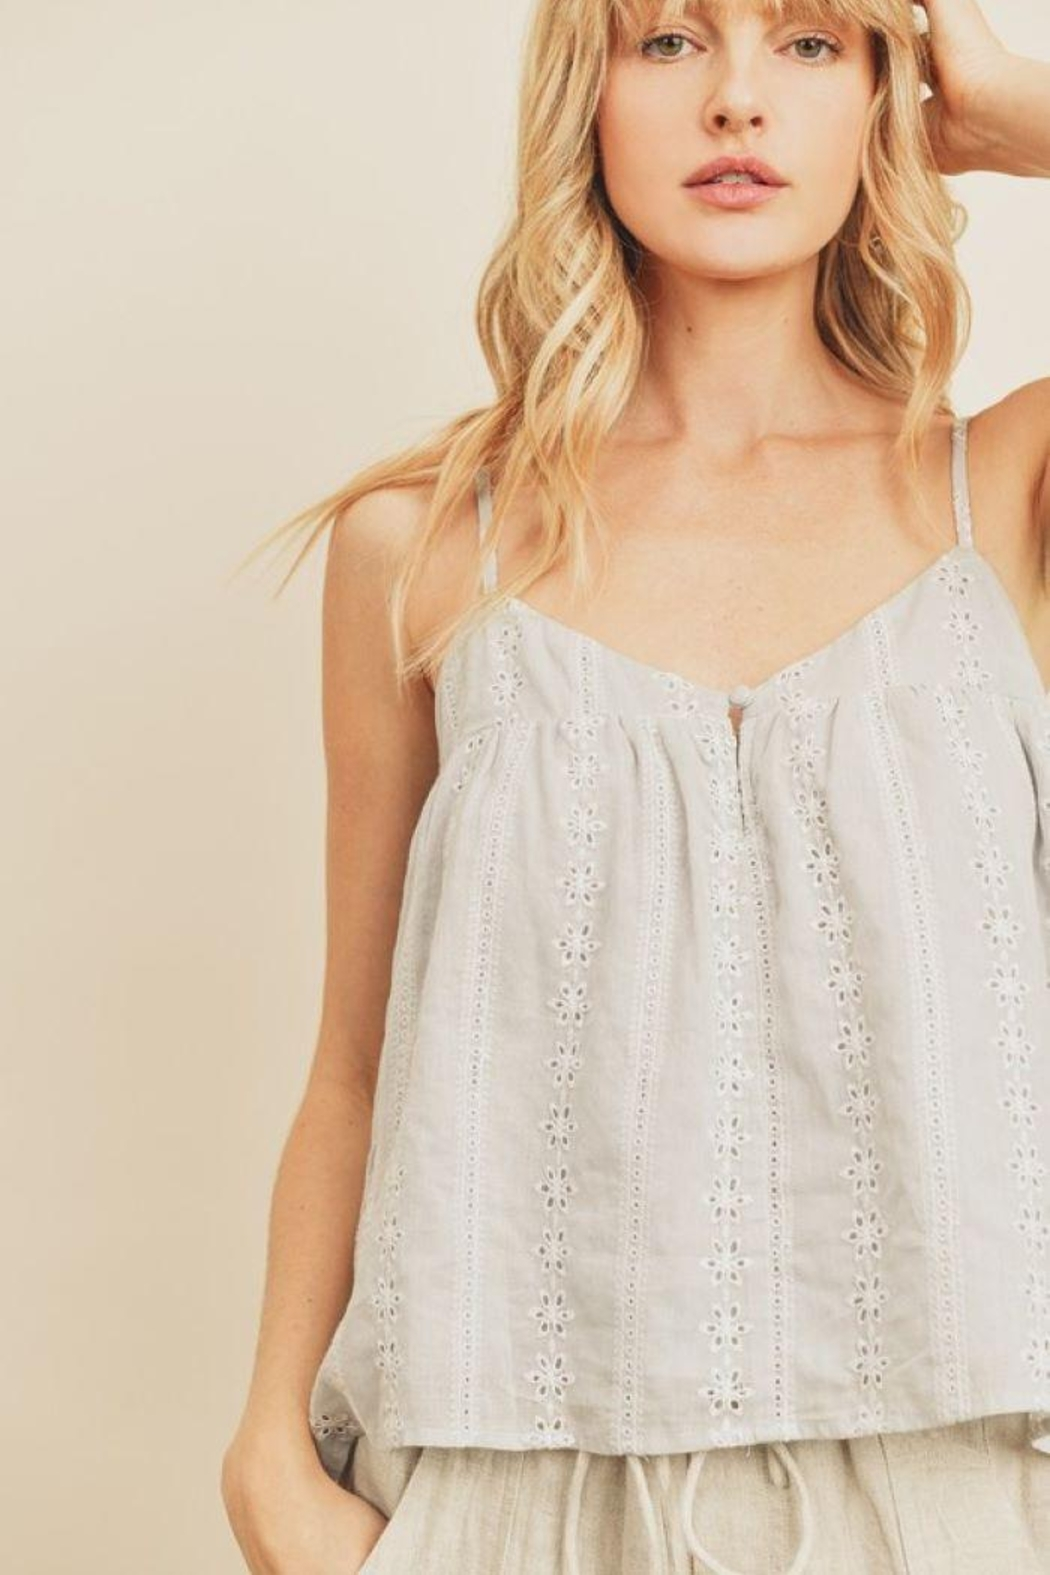 dress forum Striped Eyelet Triangle Cami Top - Main Image